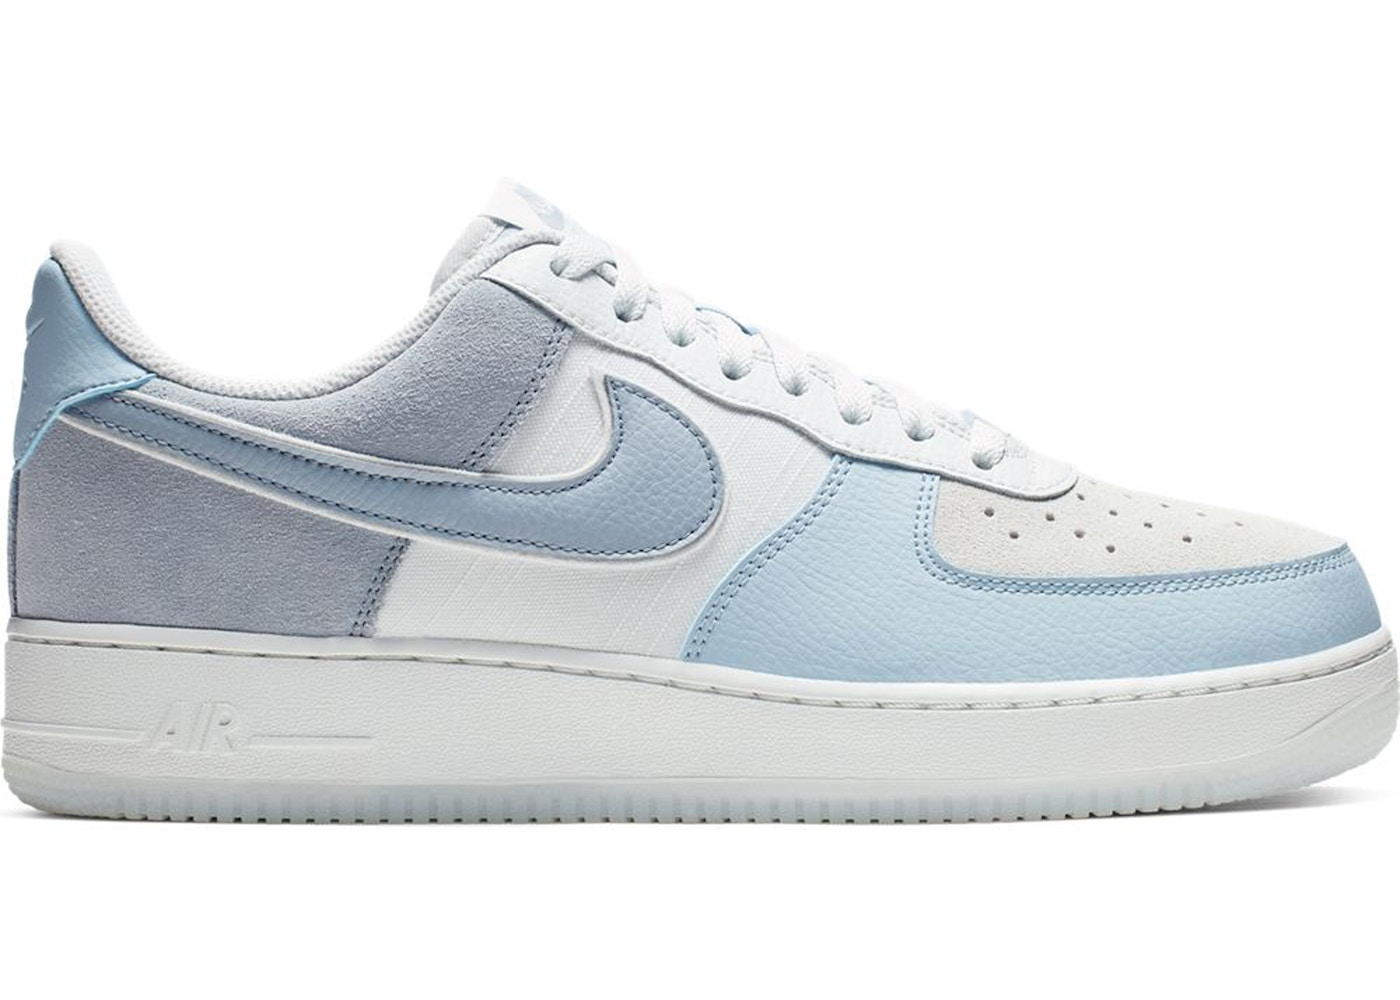 Air Force 1 Low Light Armory Blue Obsidian Mist